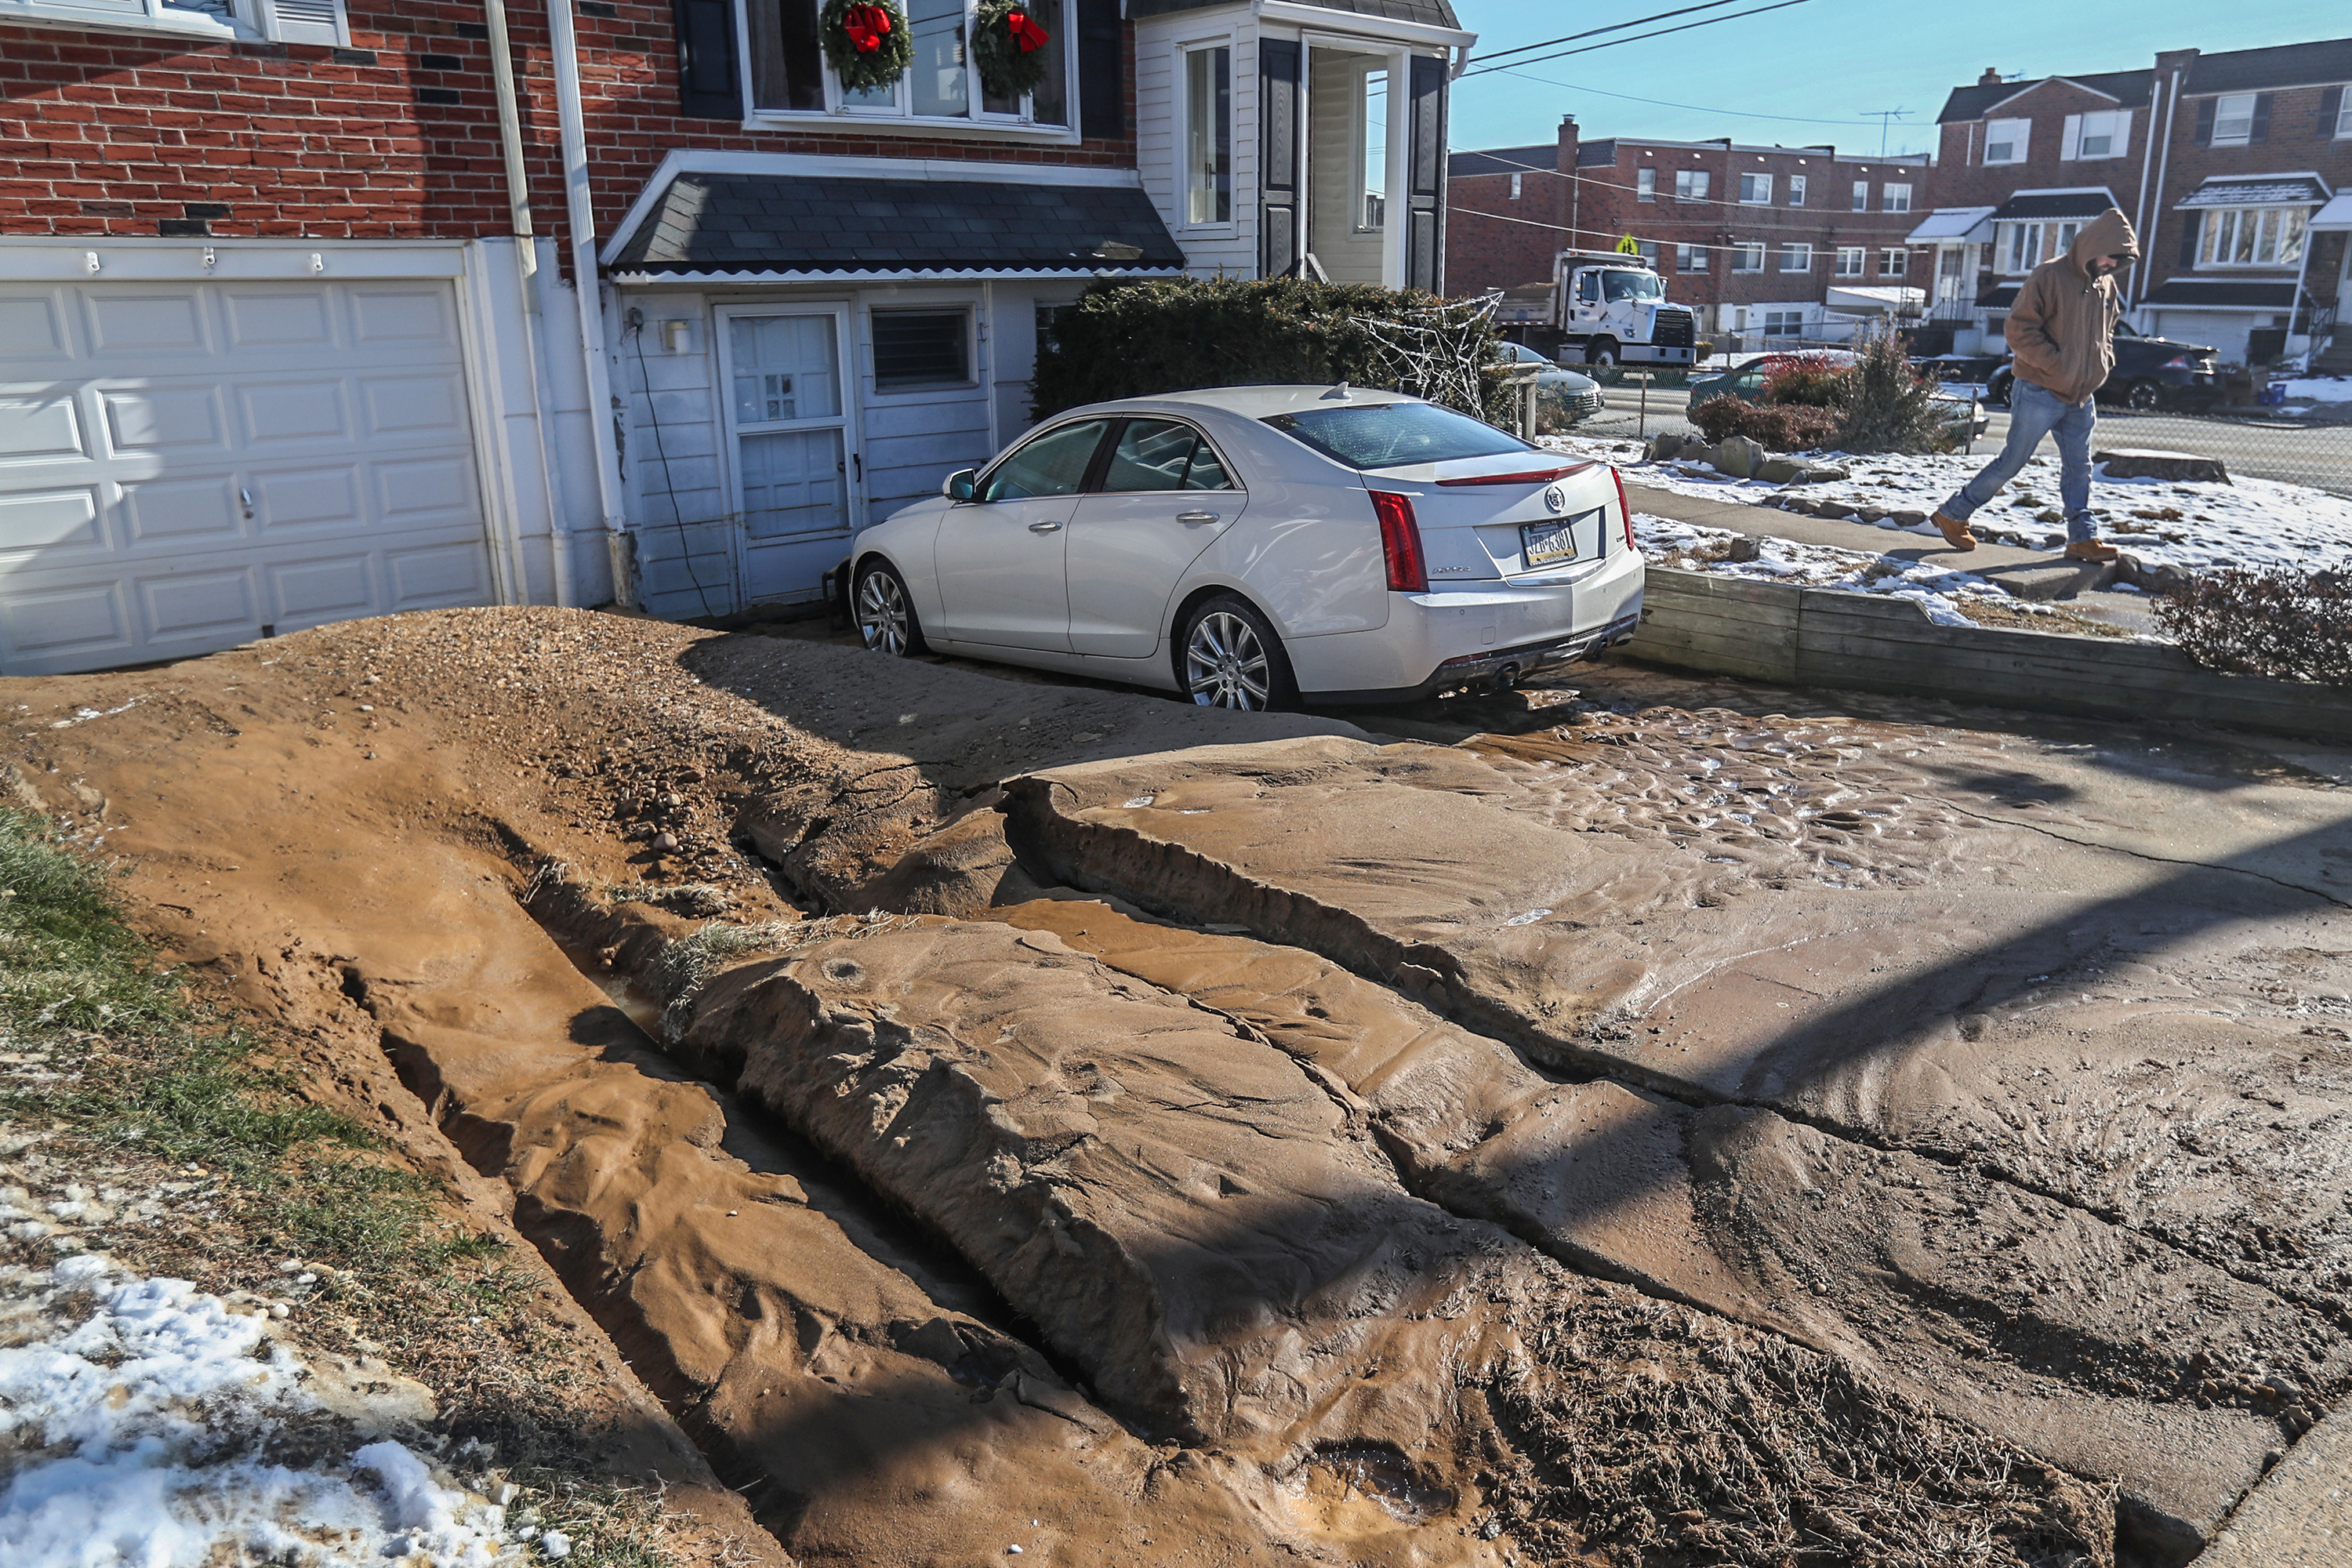 Several feet of mud ended up in the dual driveways of homes on Minden Road after an 8 inch water main burst early on Tuesday morning. The car that is parked was covered with water over the front hood. Philadelphia Water Department was working on repairs. MICHAEL BRYANT/ Staff Photographer